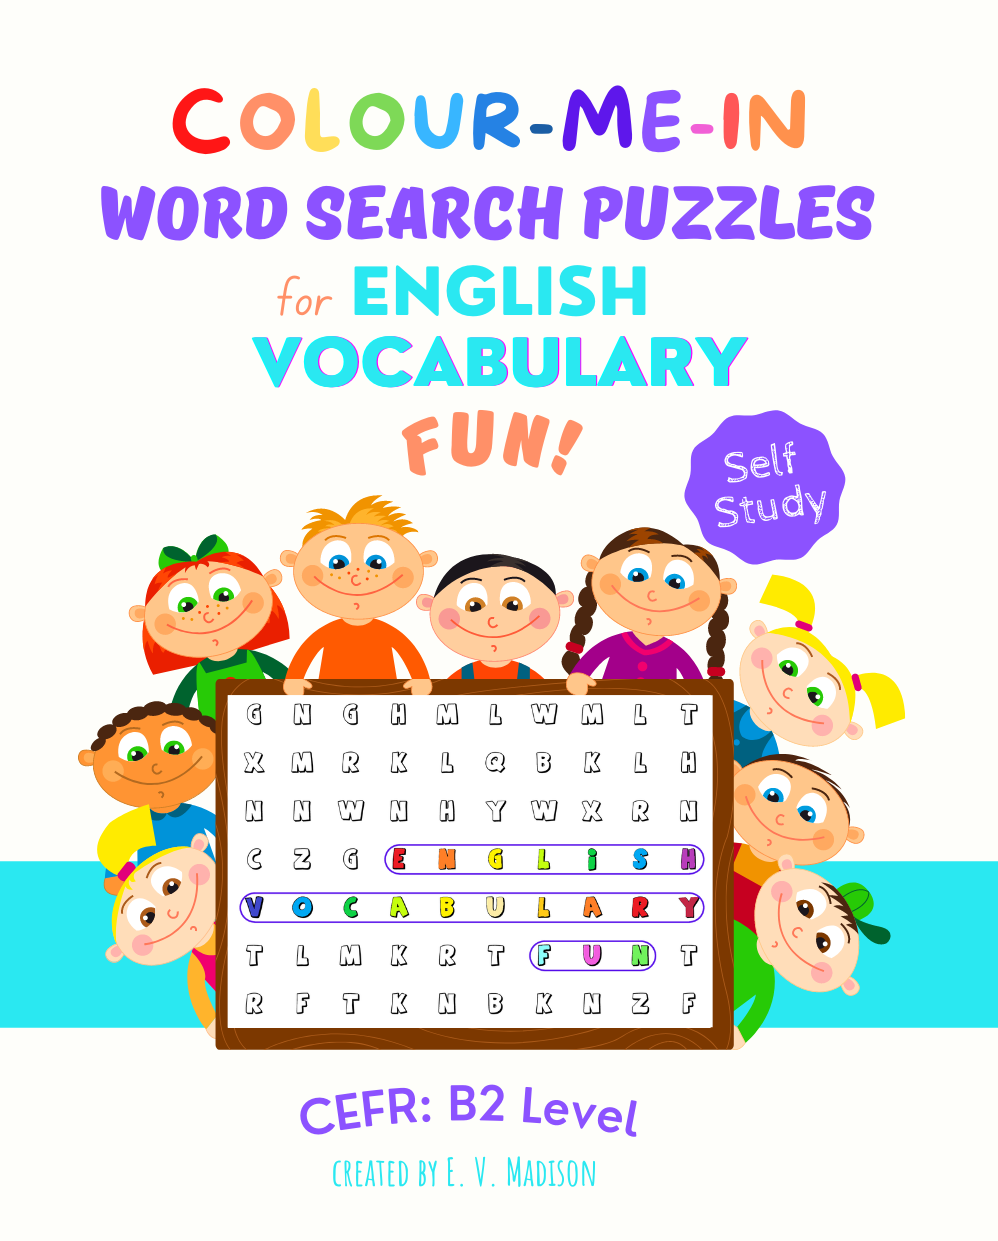 Colour-Me-In Word Search Puzzles for English Vocabulary Fun! B2 Level